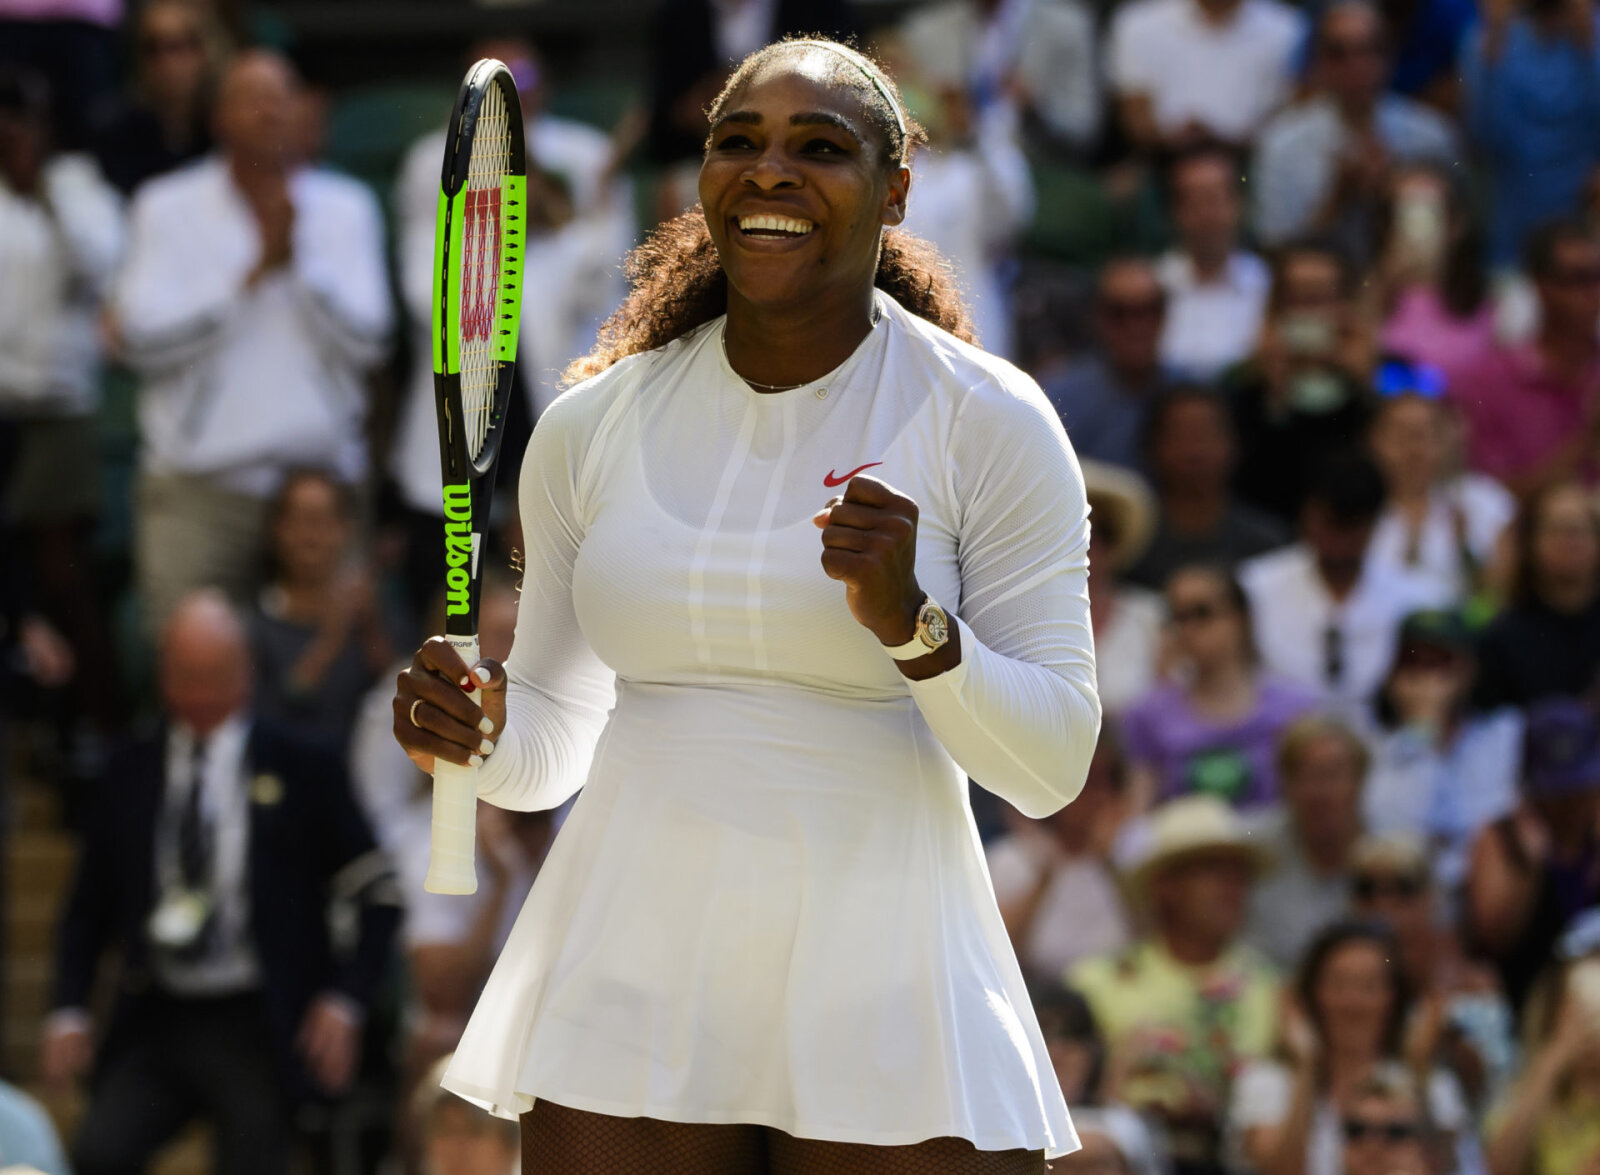 Wimbledon Championships 2021 the Best Chance for Serena Williams and Roger Federer To Win a Slam, Says Legend